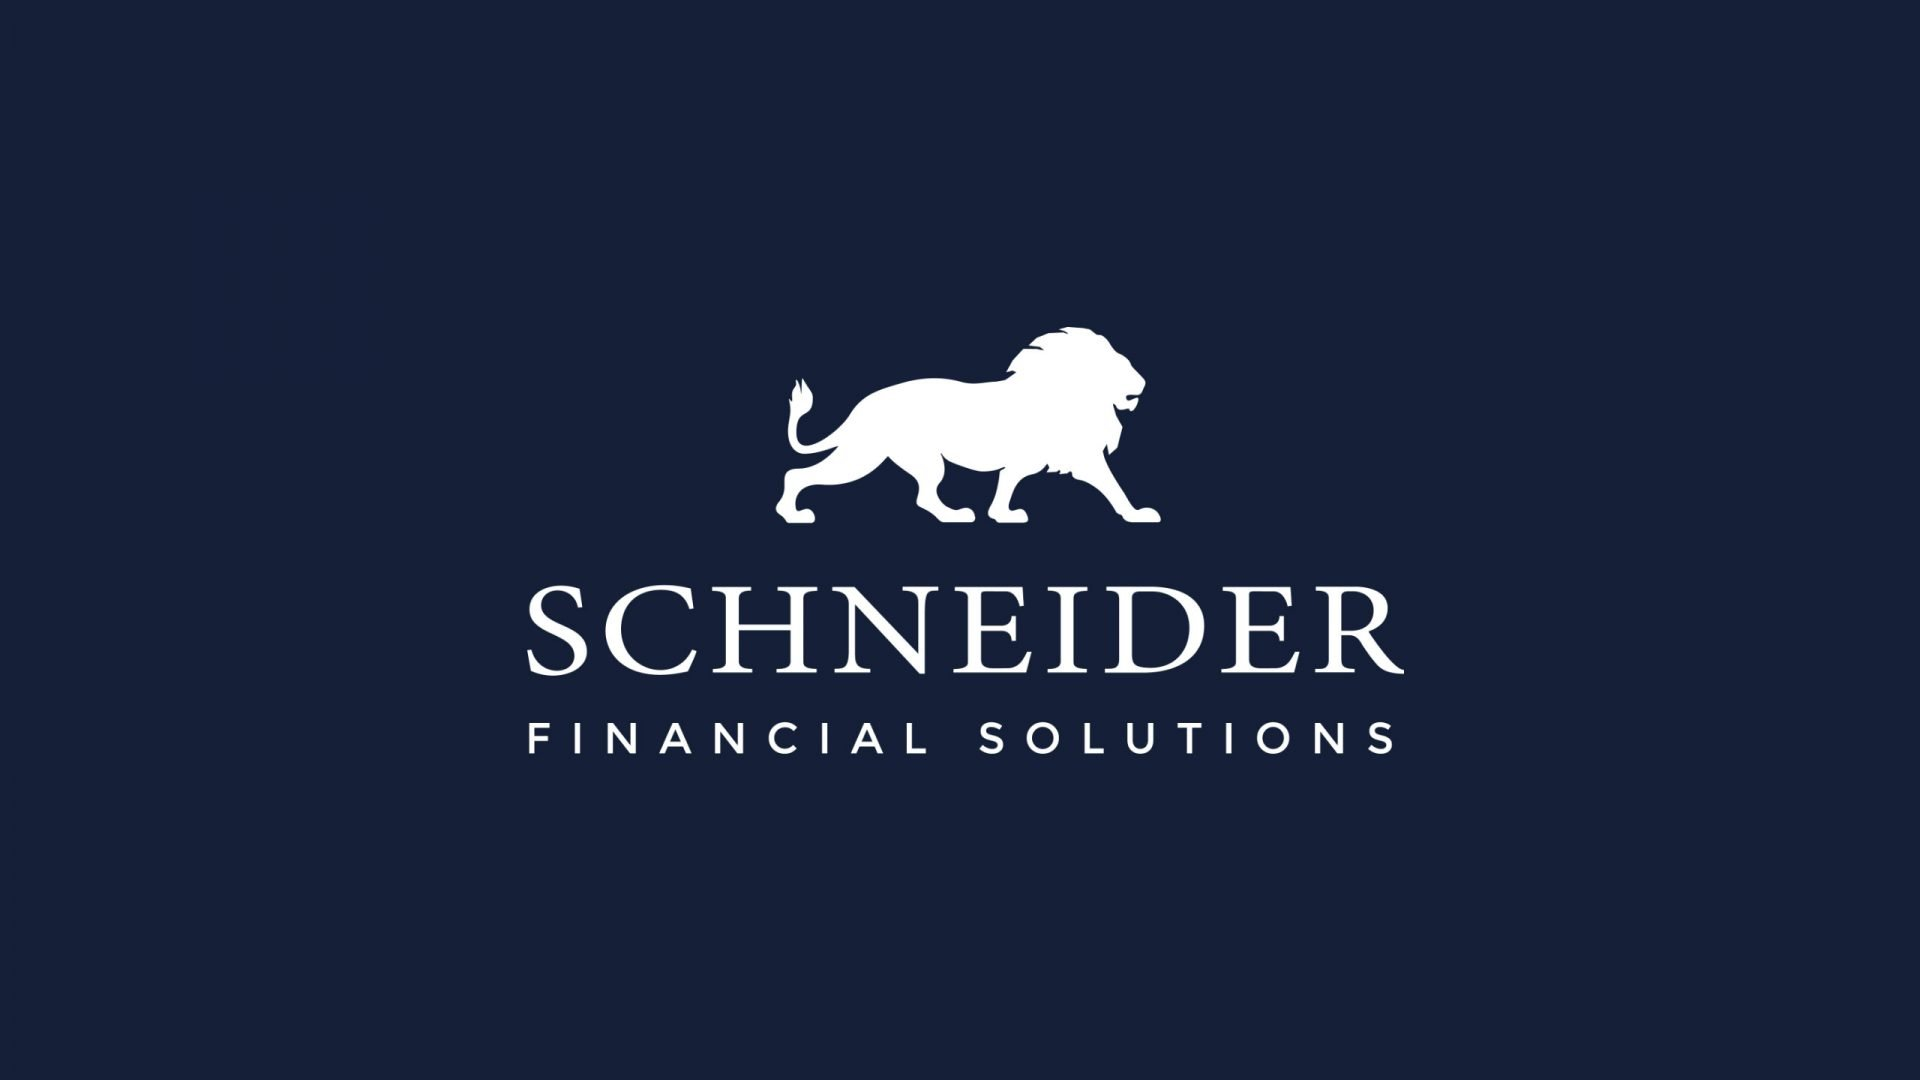 Crate47 Schneider Financial Services rebranding and website design - Brand design Full logo